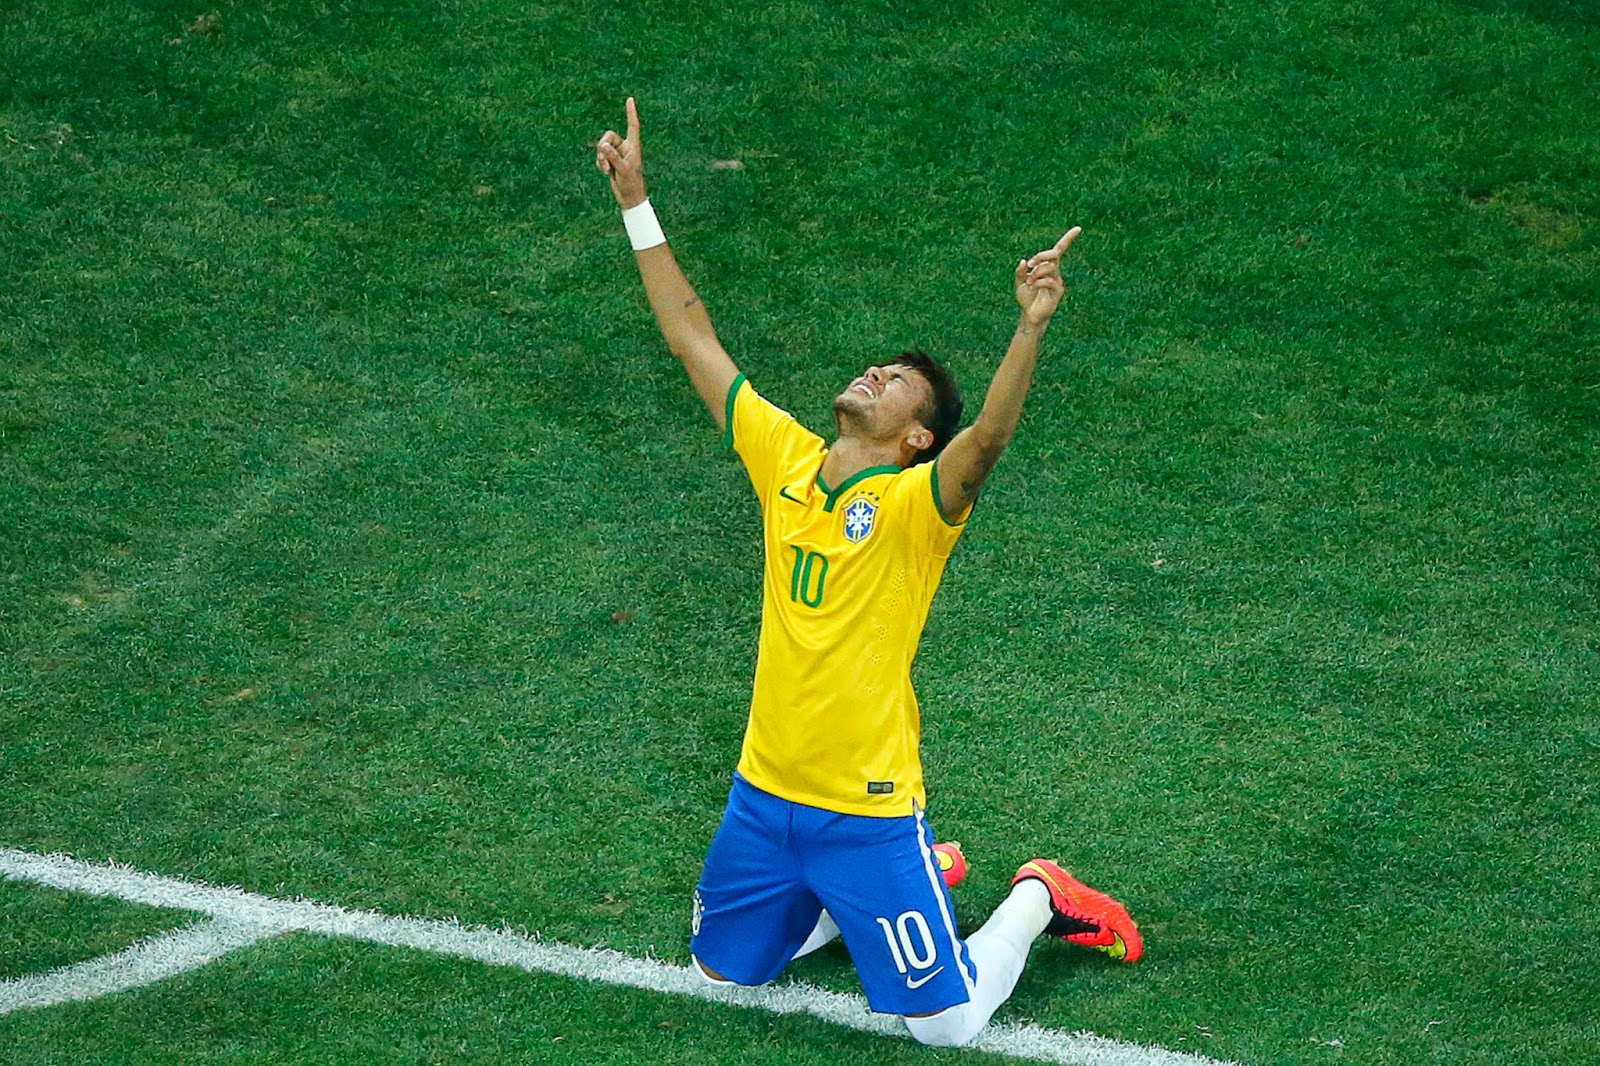 Brazil, Brazil vs Croatia, FIFA World Cup, FIFA World Cup 2014, First match, Football, Sports, Ivan Perisic, Stipe Pletikosa, Oscar, Neymar, David Luiz, Luiz Felipe Scolari,